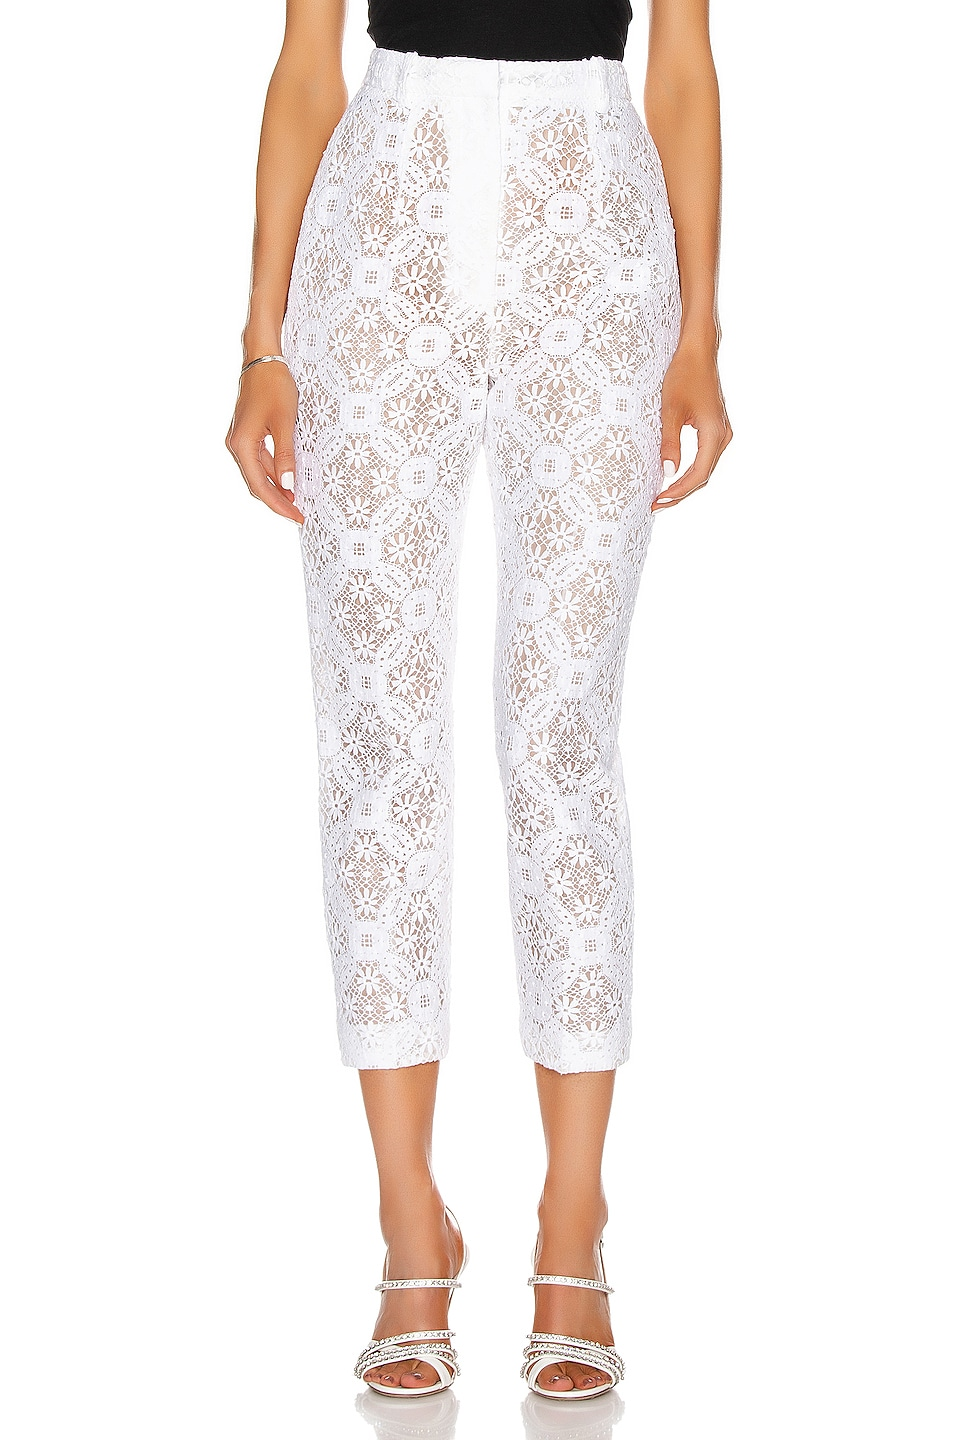 Image 1 of Alexander McQueen High Waist Lace Pant in Optical White